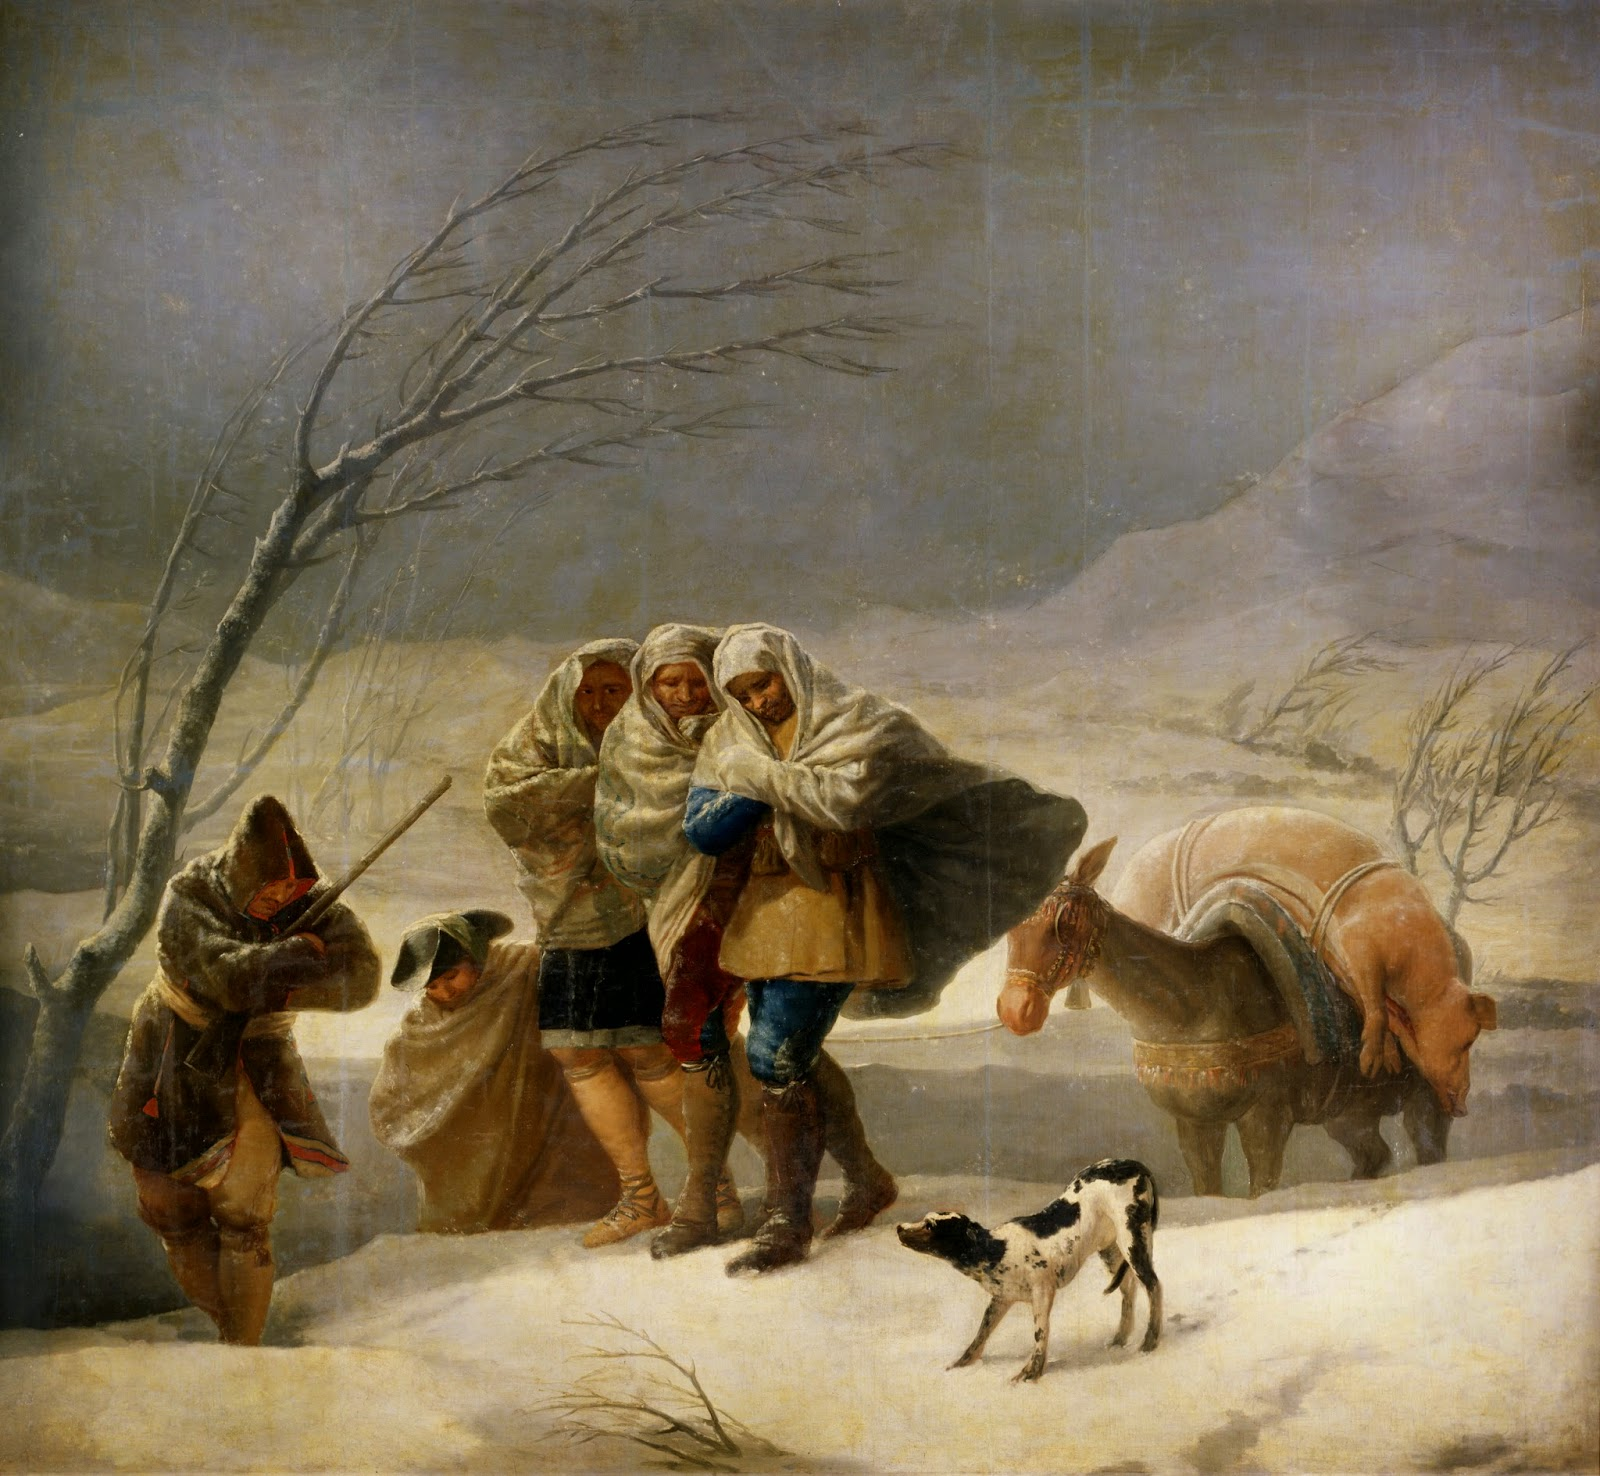 la nevada -Francisco de Goya